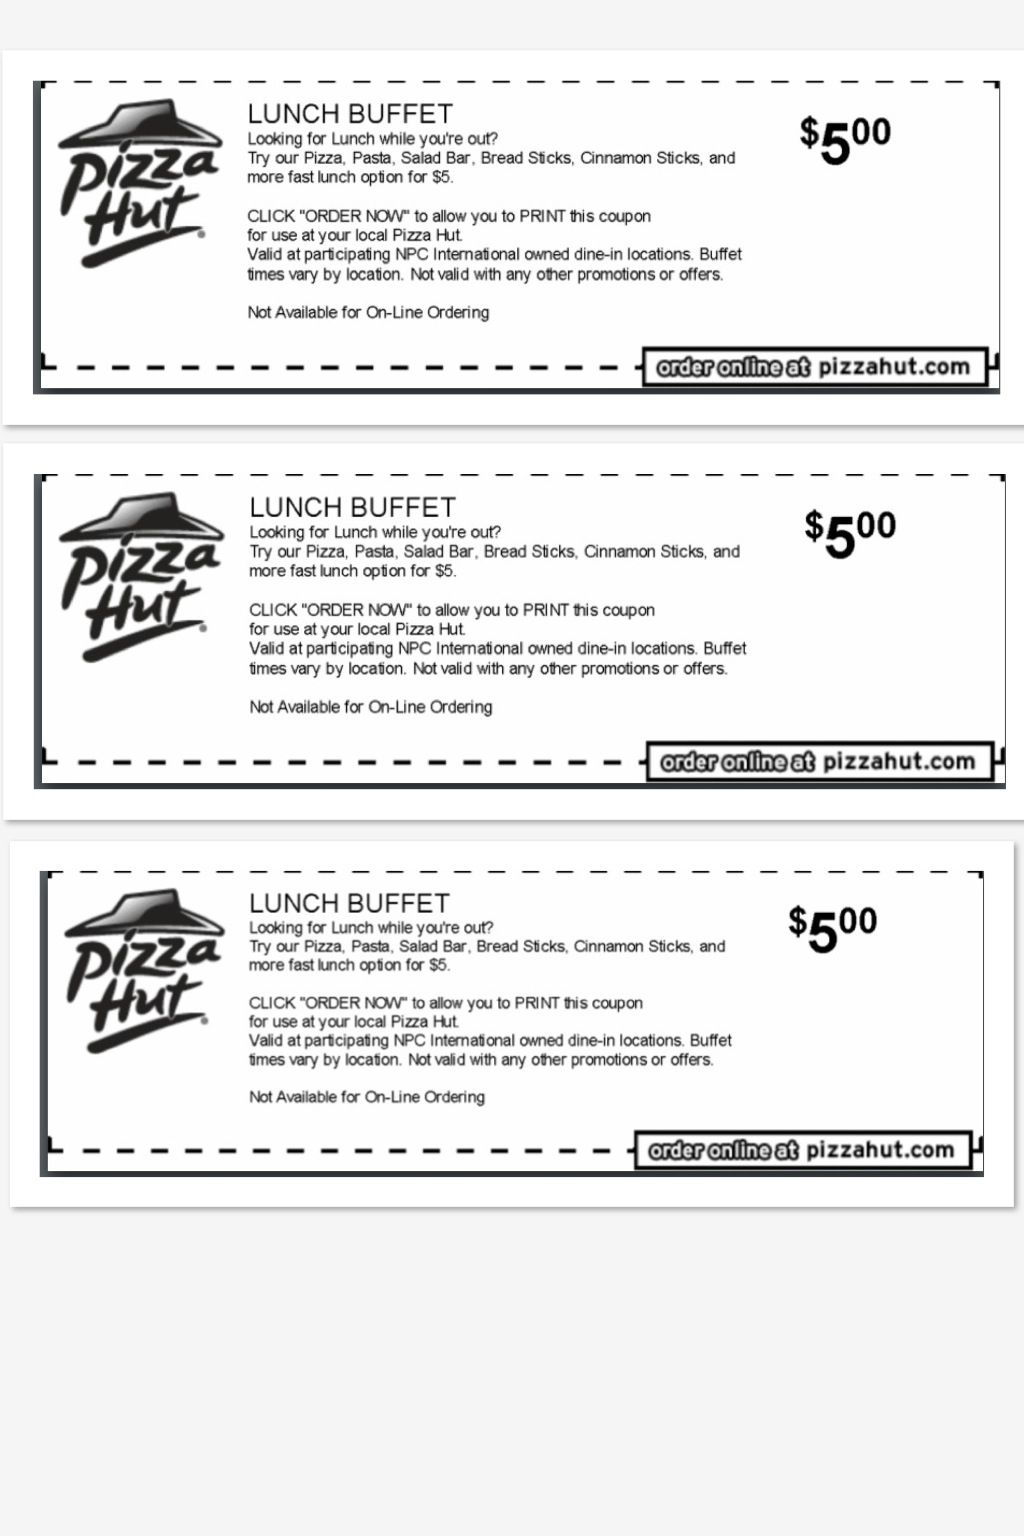 pizza hut buffet coupons no expiration try soon in 2019 pizza rh pinterest com  coupons for pizza hut lunch buffet